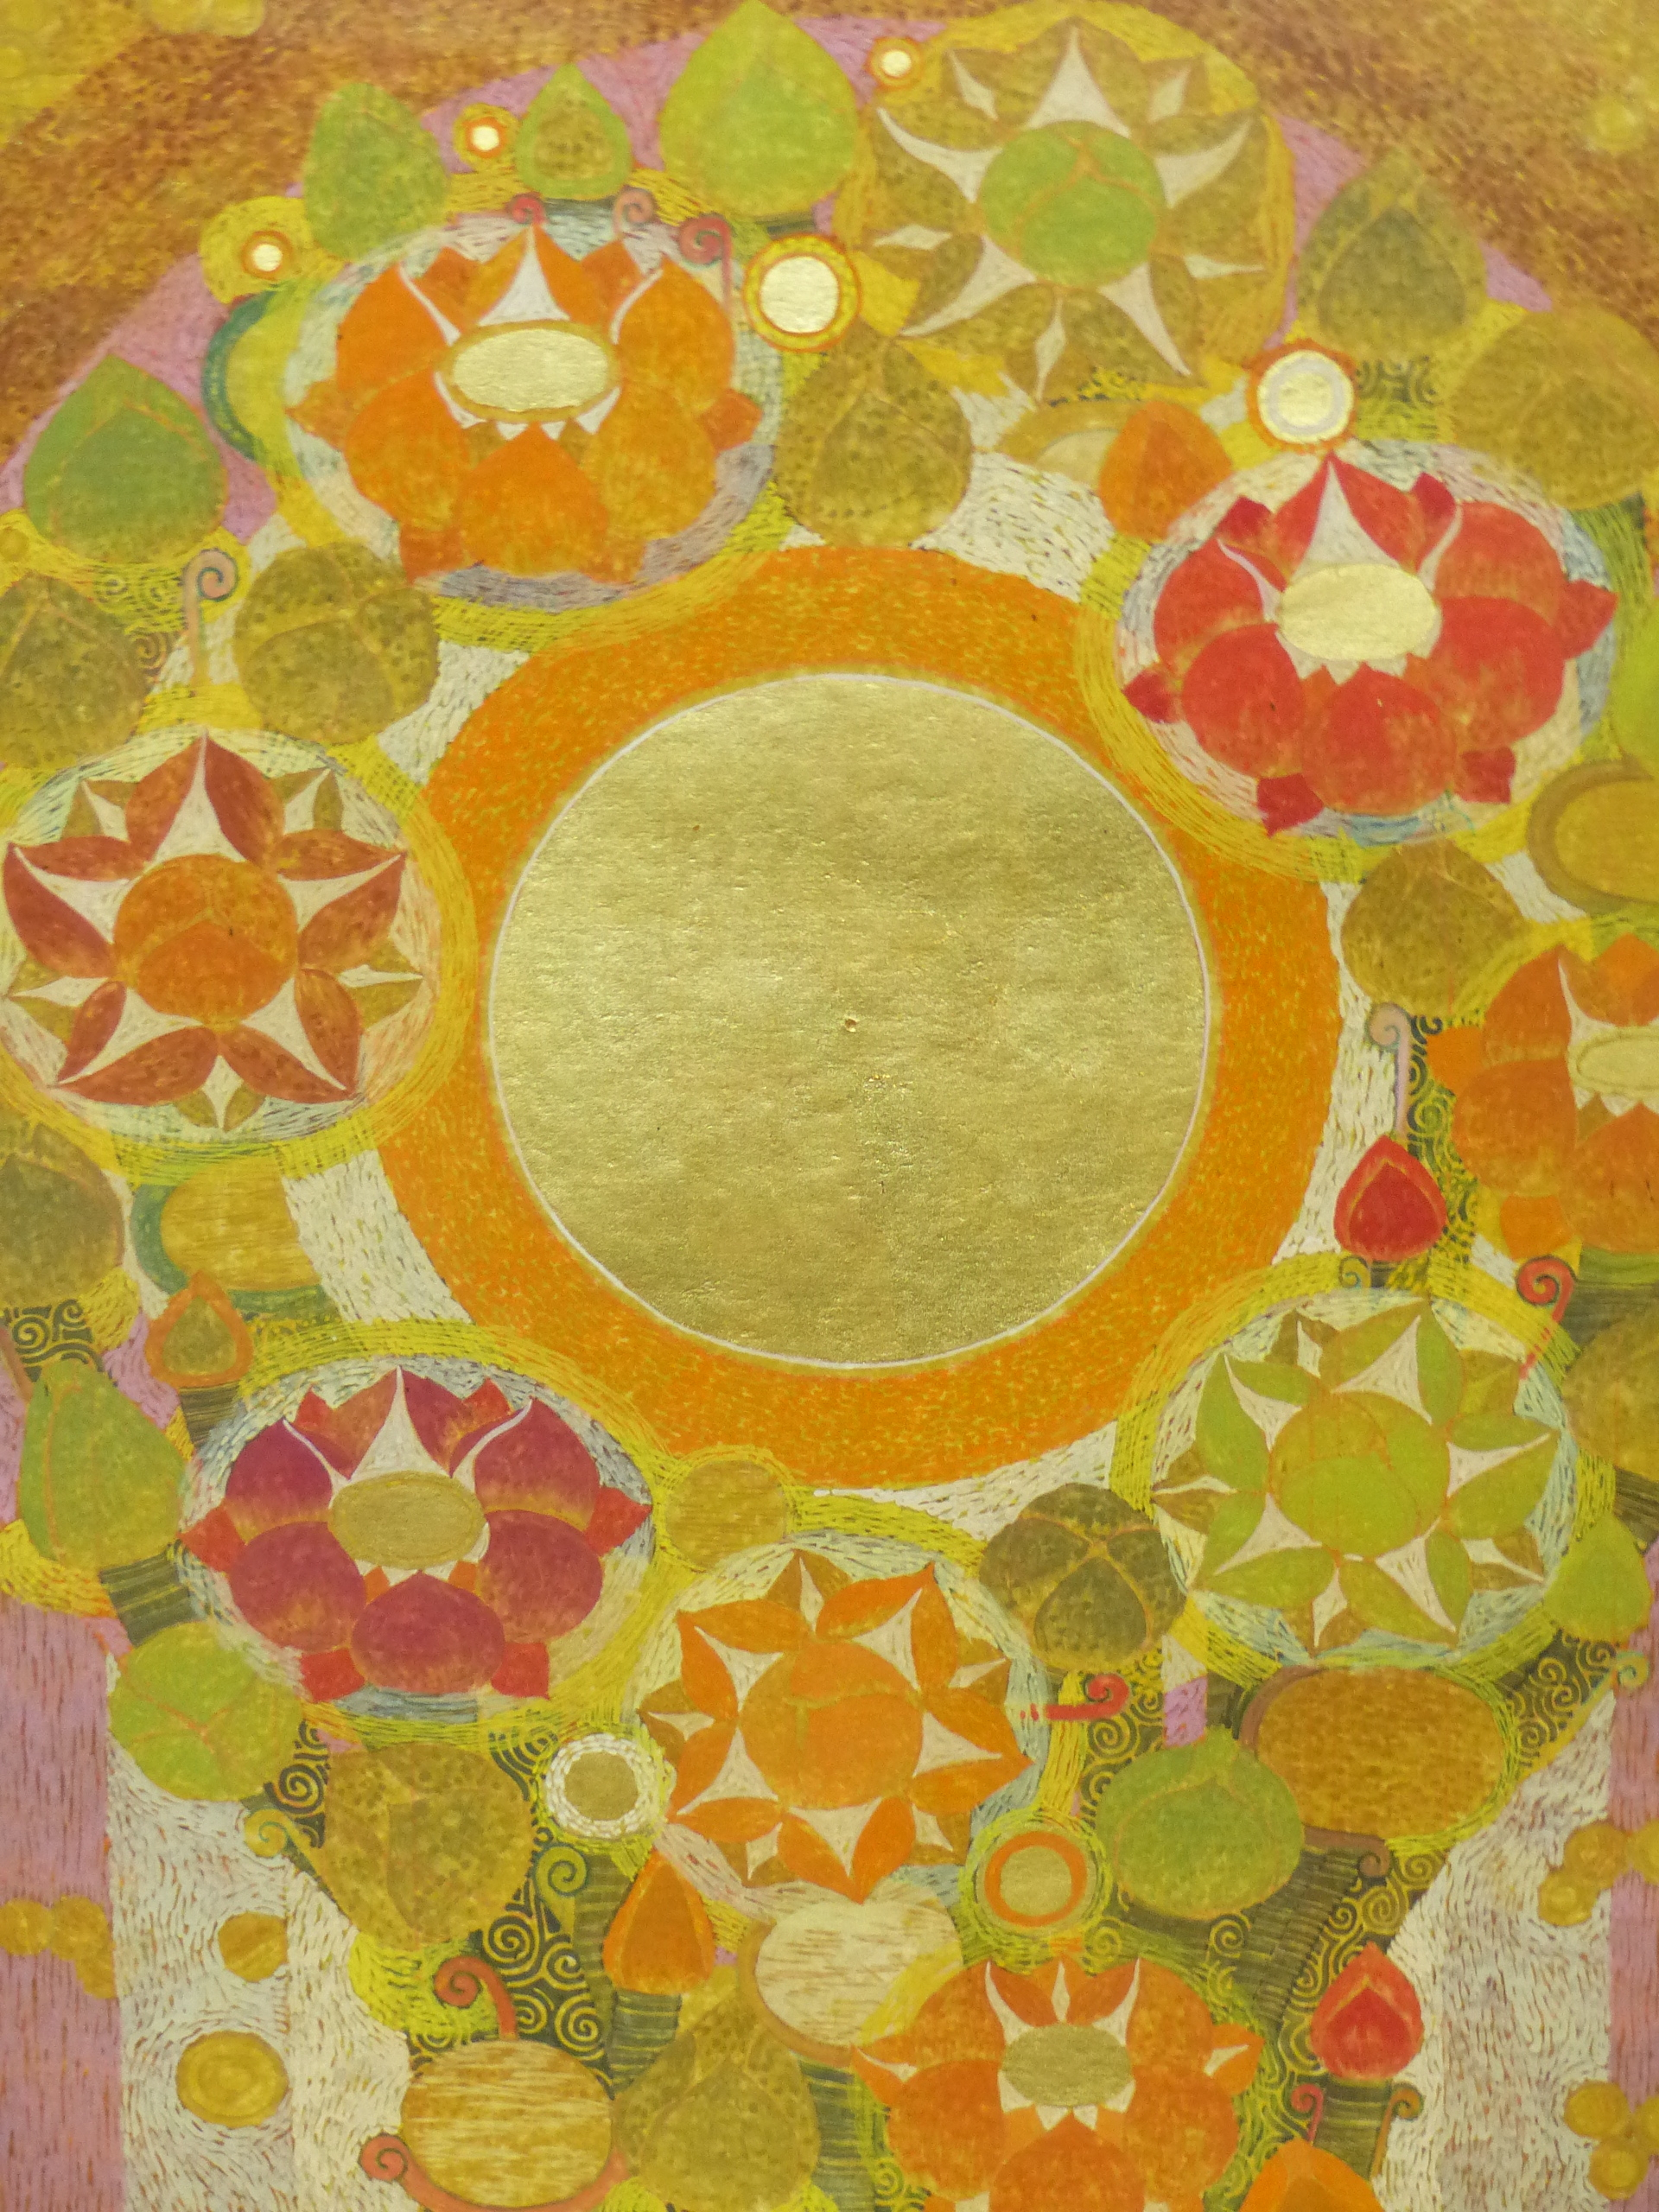 20th CENTURY EASTERN SCHOOL. A GEOMETRIC FLORAL ABSTRACTION WITH GILT HIGHLIGHTS AND WATERCOLOUR, - Image 2 of 8